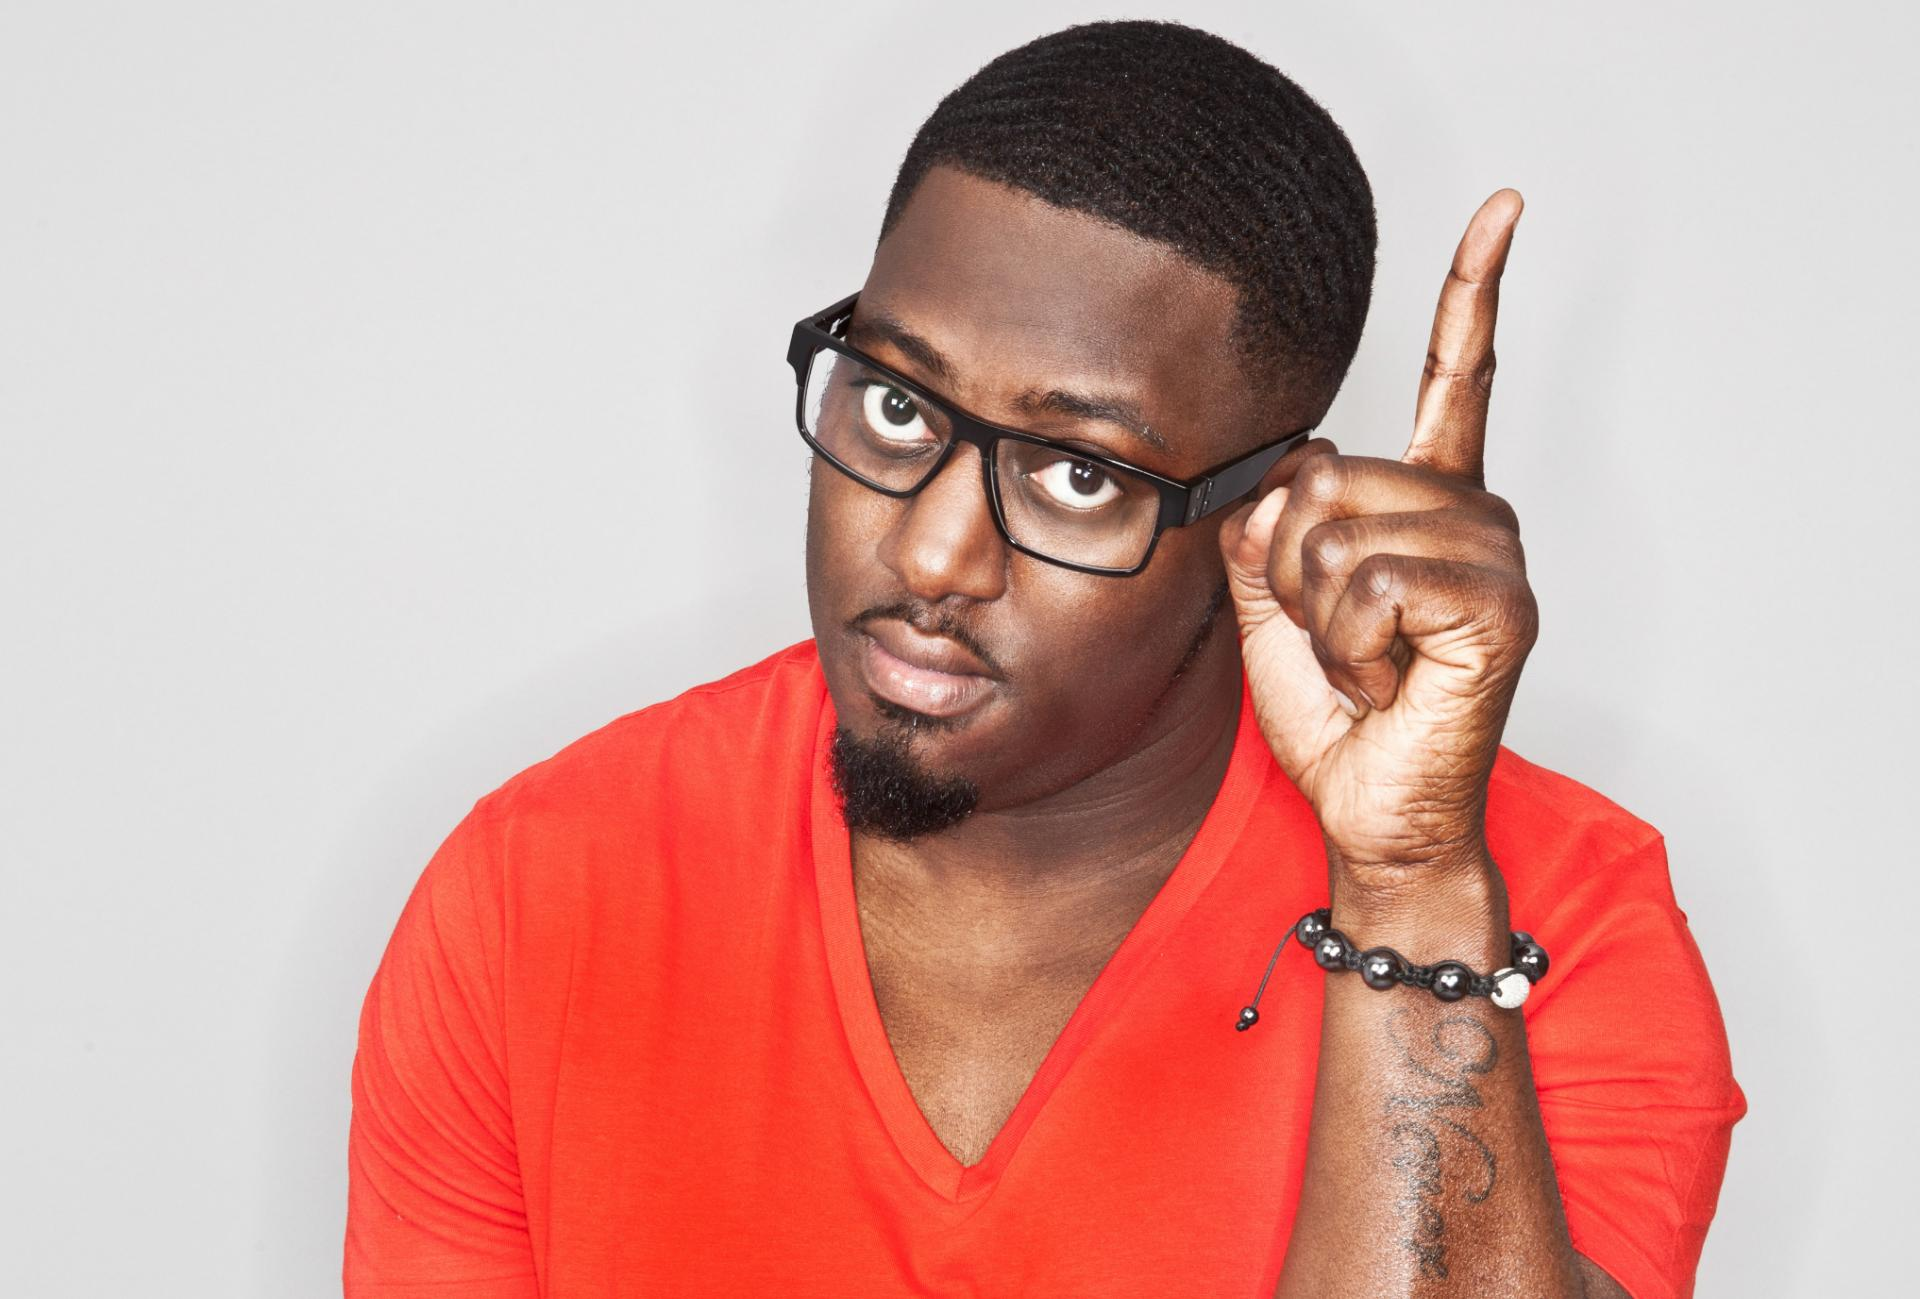 Stop hyping and fueling 'beefs' – Ghanaian/UK rapper to Ghanaian media